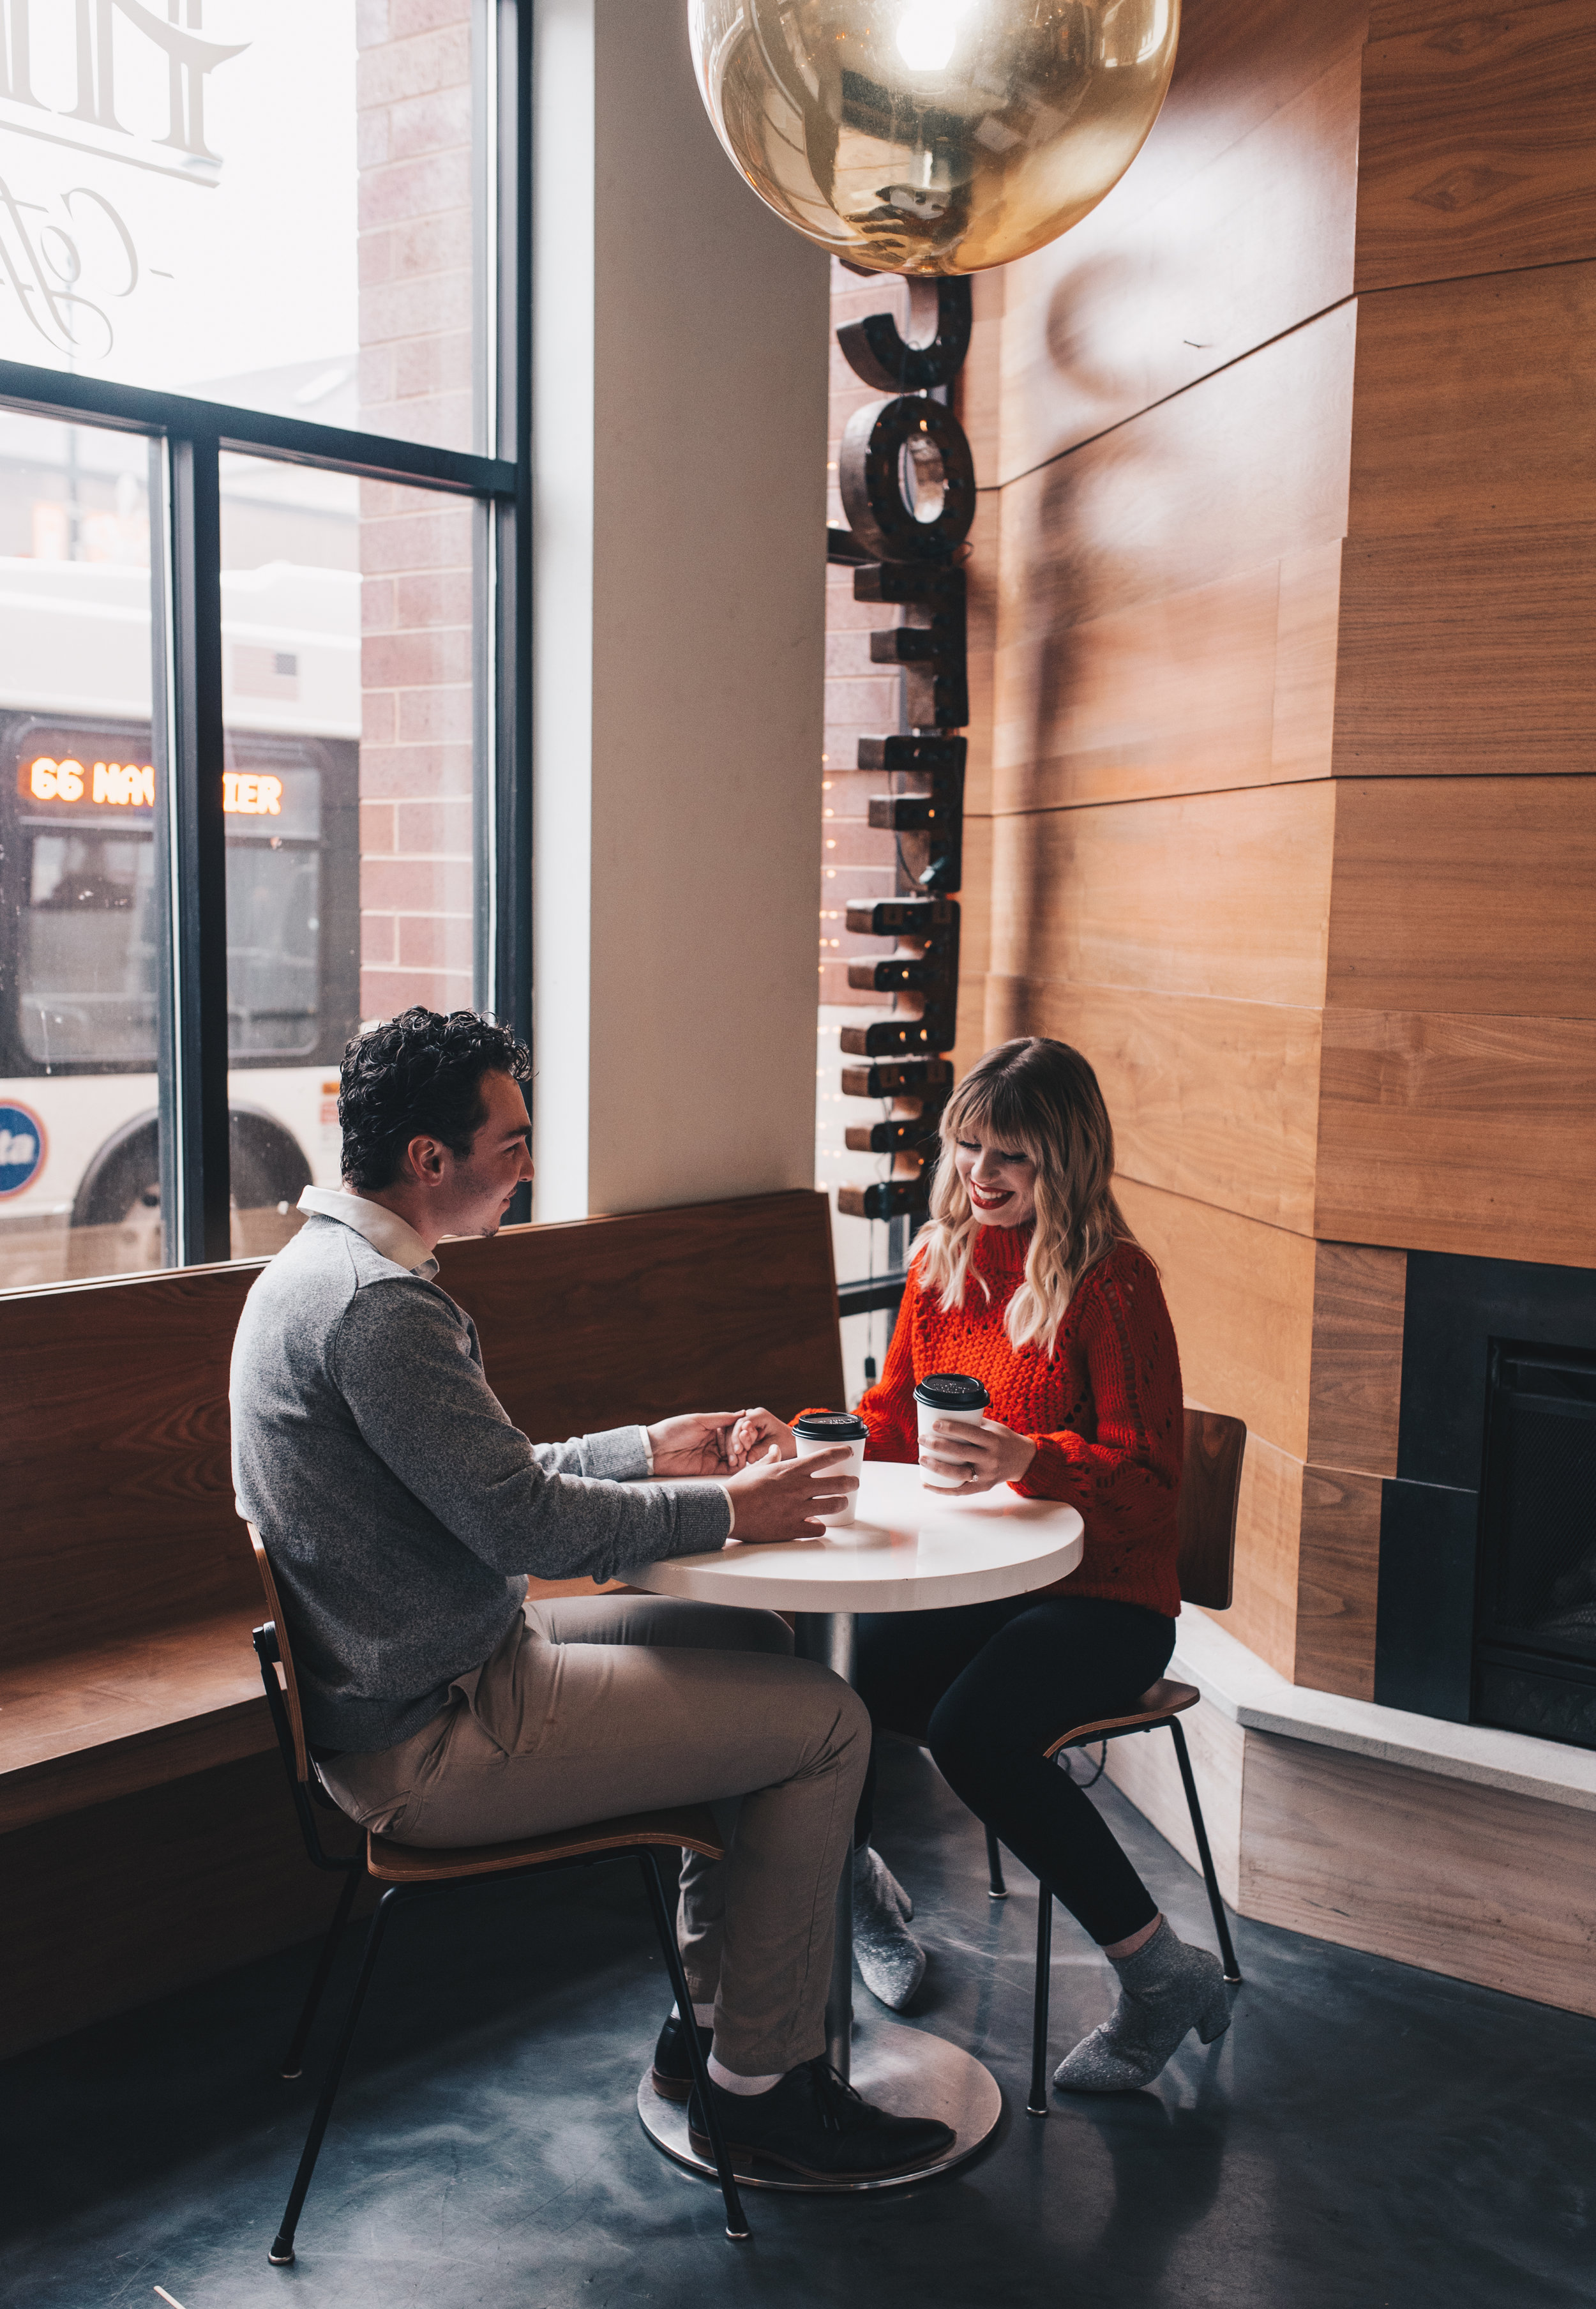 Chicago Coffee Shop Engagement Shoot, Chicago Couples Photography, Chicago Engagement Photography, Coffee Shop Couples Photography